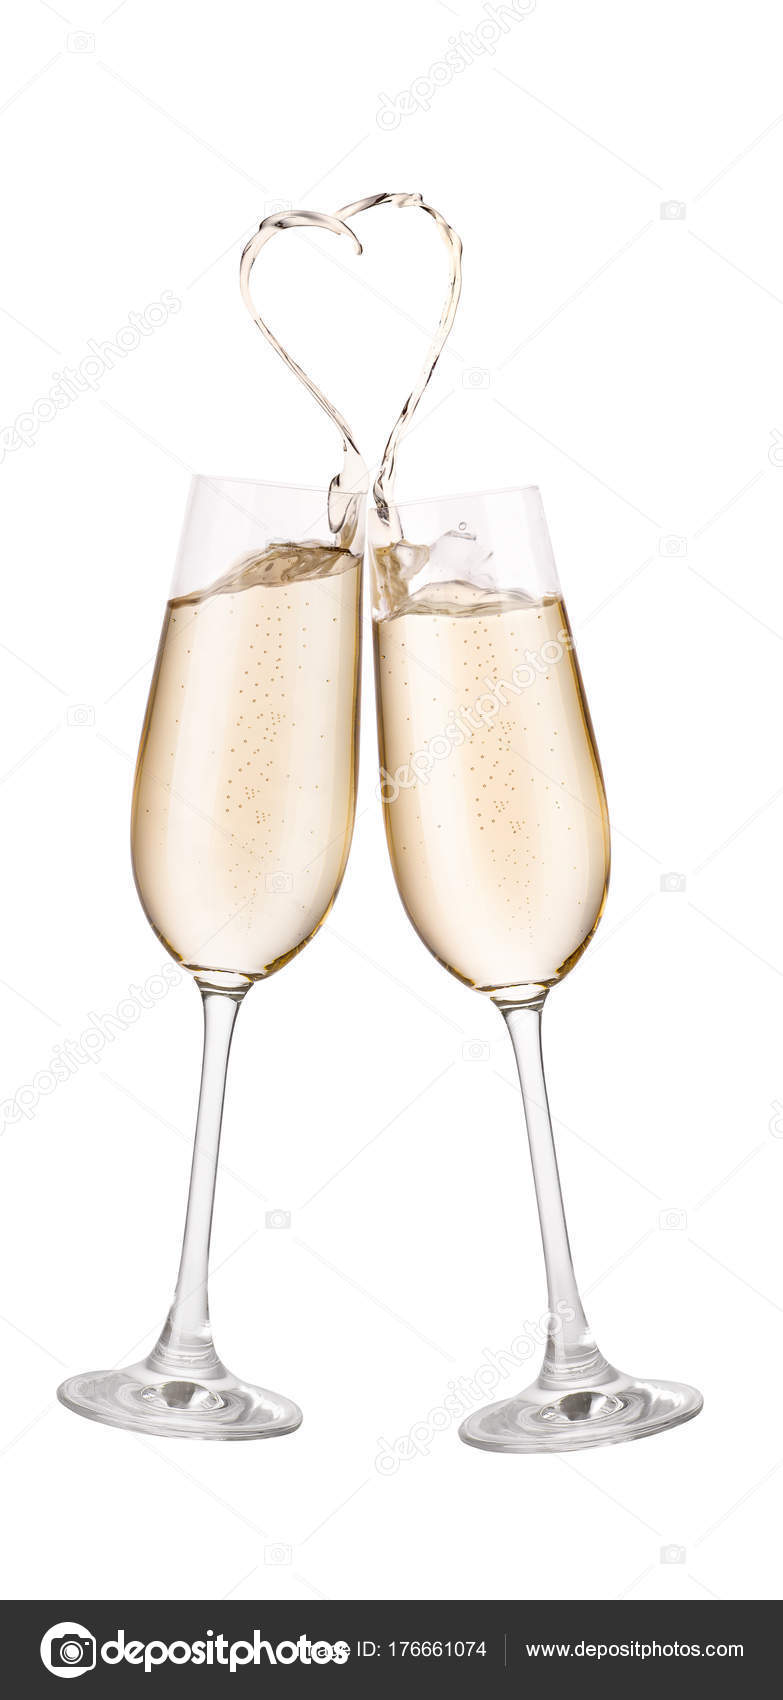 bb793fdb7a1a Glasses of champagne toasting isolated on white background. Splash in the  shape of heart. Cheers. Pair of champagne glasses making toast.